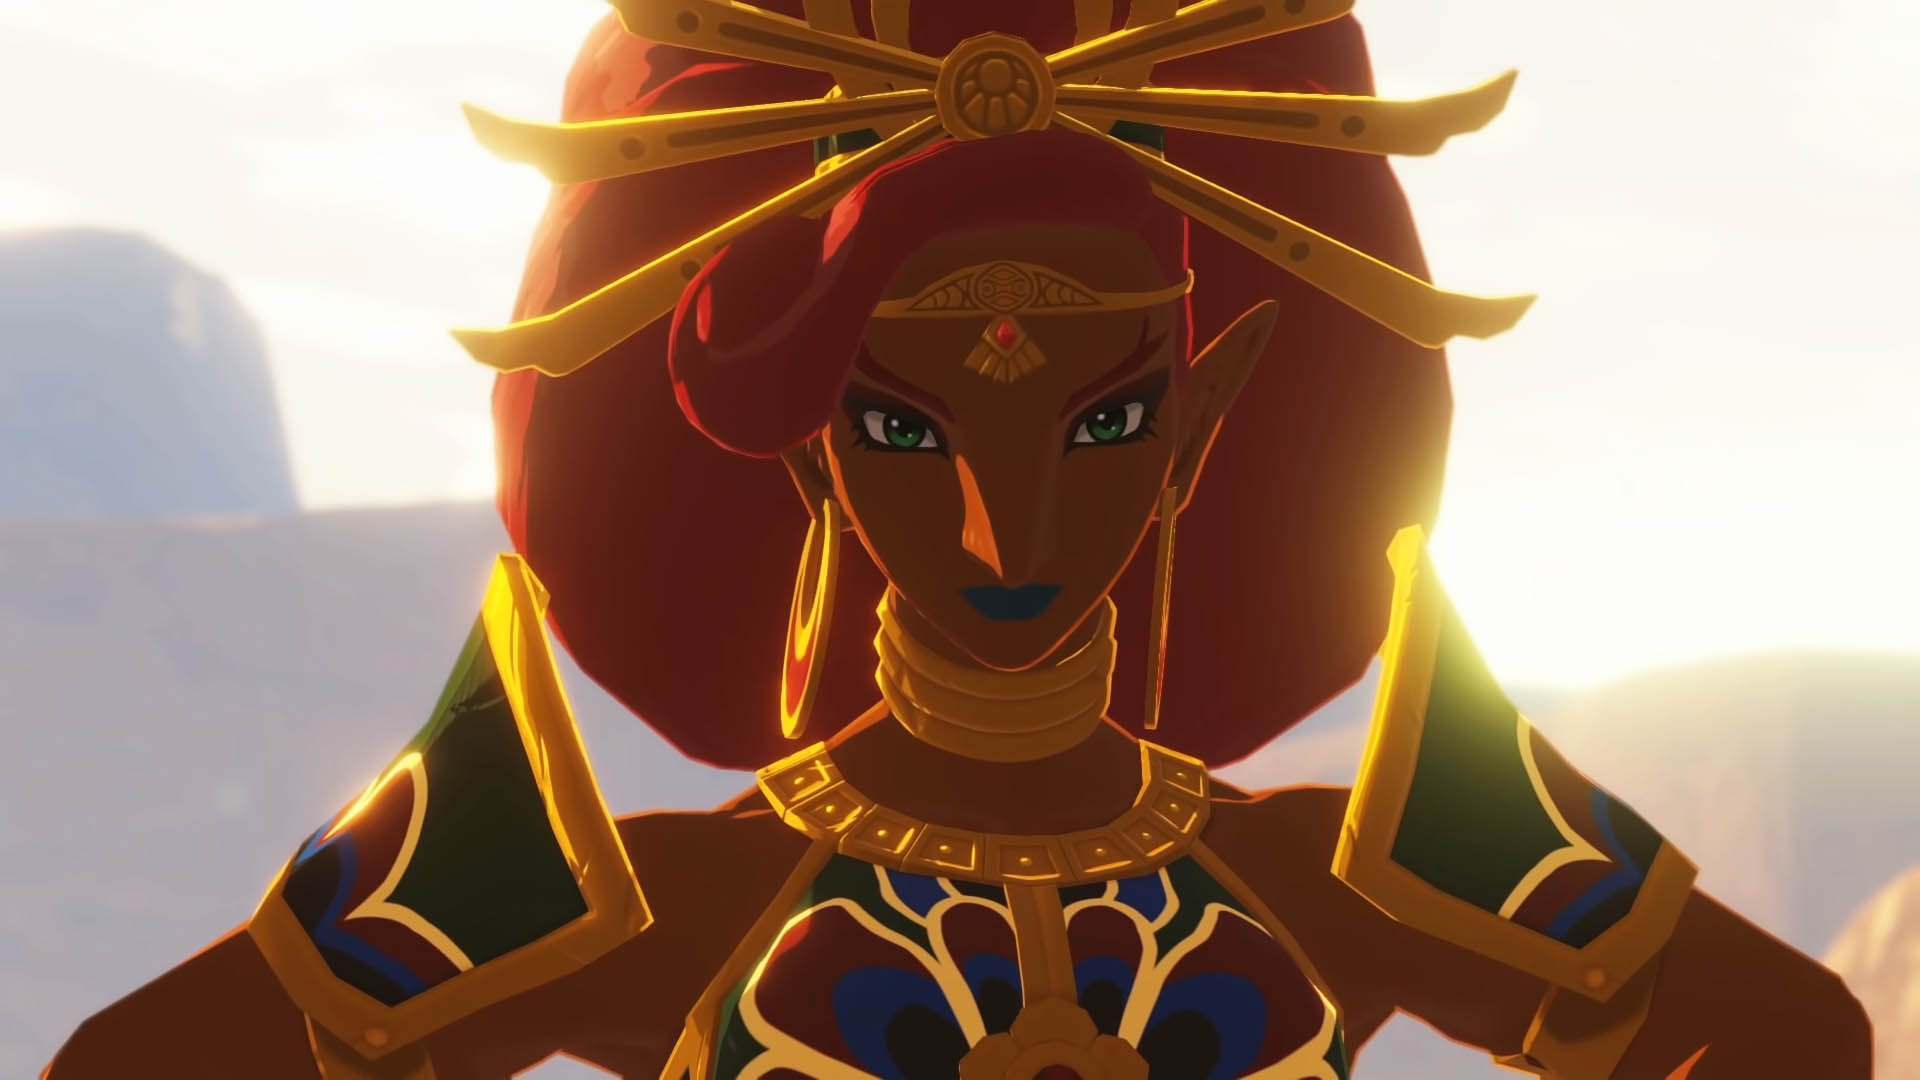 Gerudo reine Urbosa au temps de la destruction